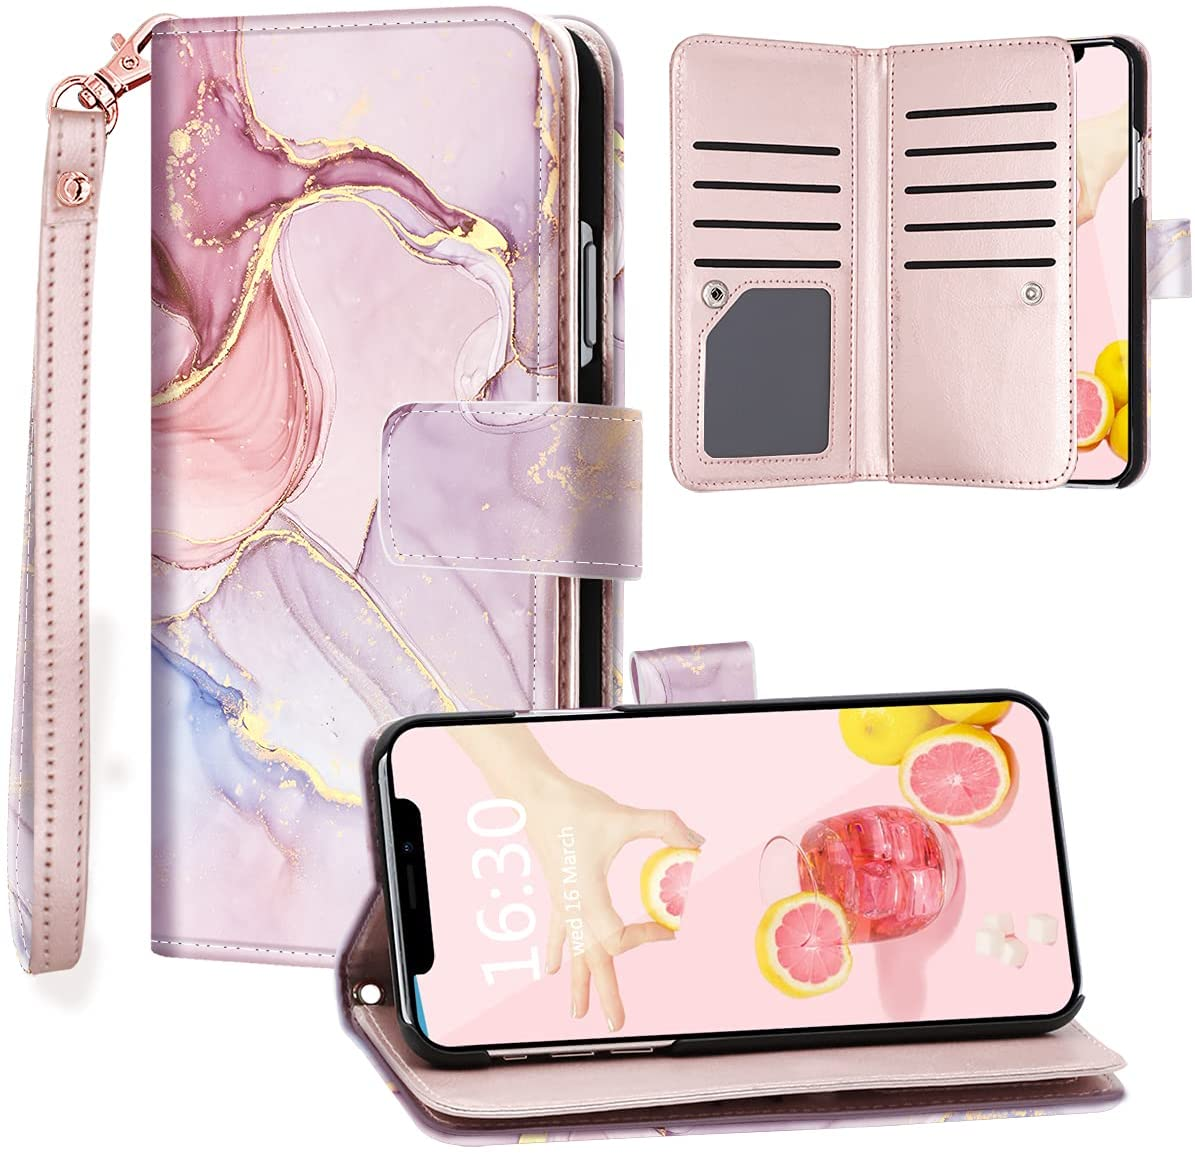 Fingic iPhone 11 Case, iPhone 11 Case Wallet, Rose Gold Marble 9 Card Holder PU Leather Detachable Wrist Strap Wallet Case for Women Cover for Apple iPhone 11 2019 (6.1 inch), Rose Gold